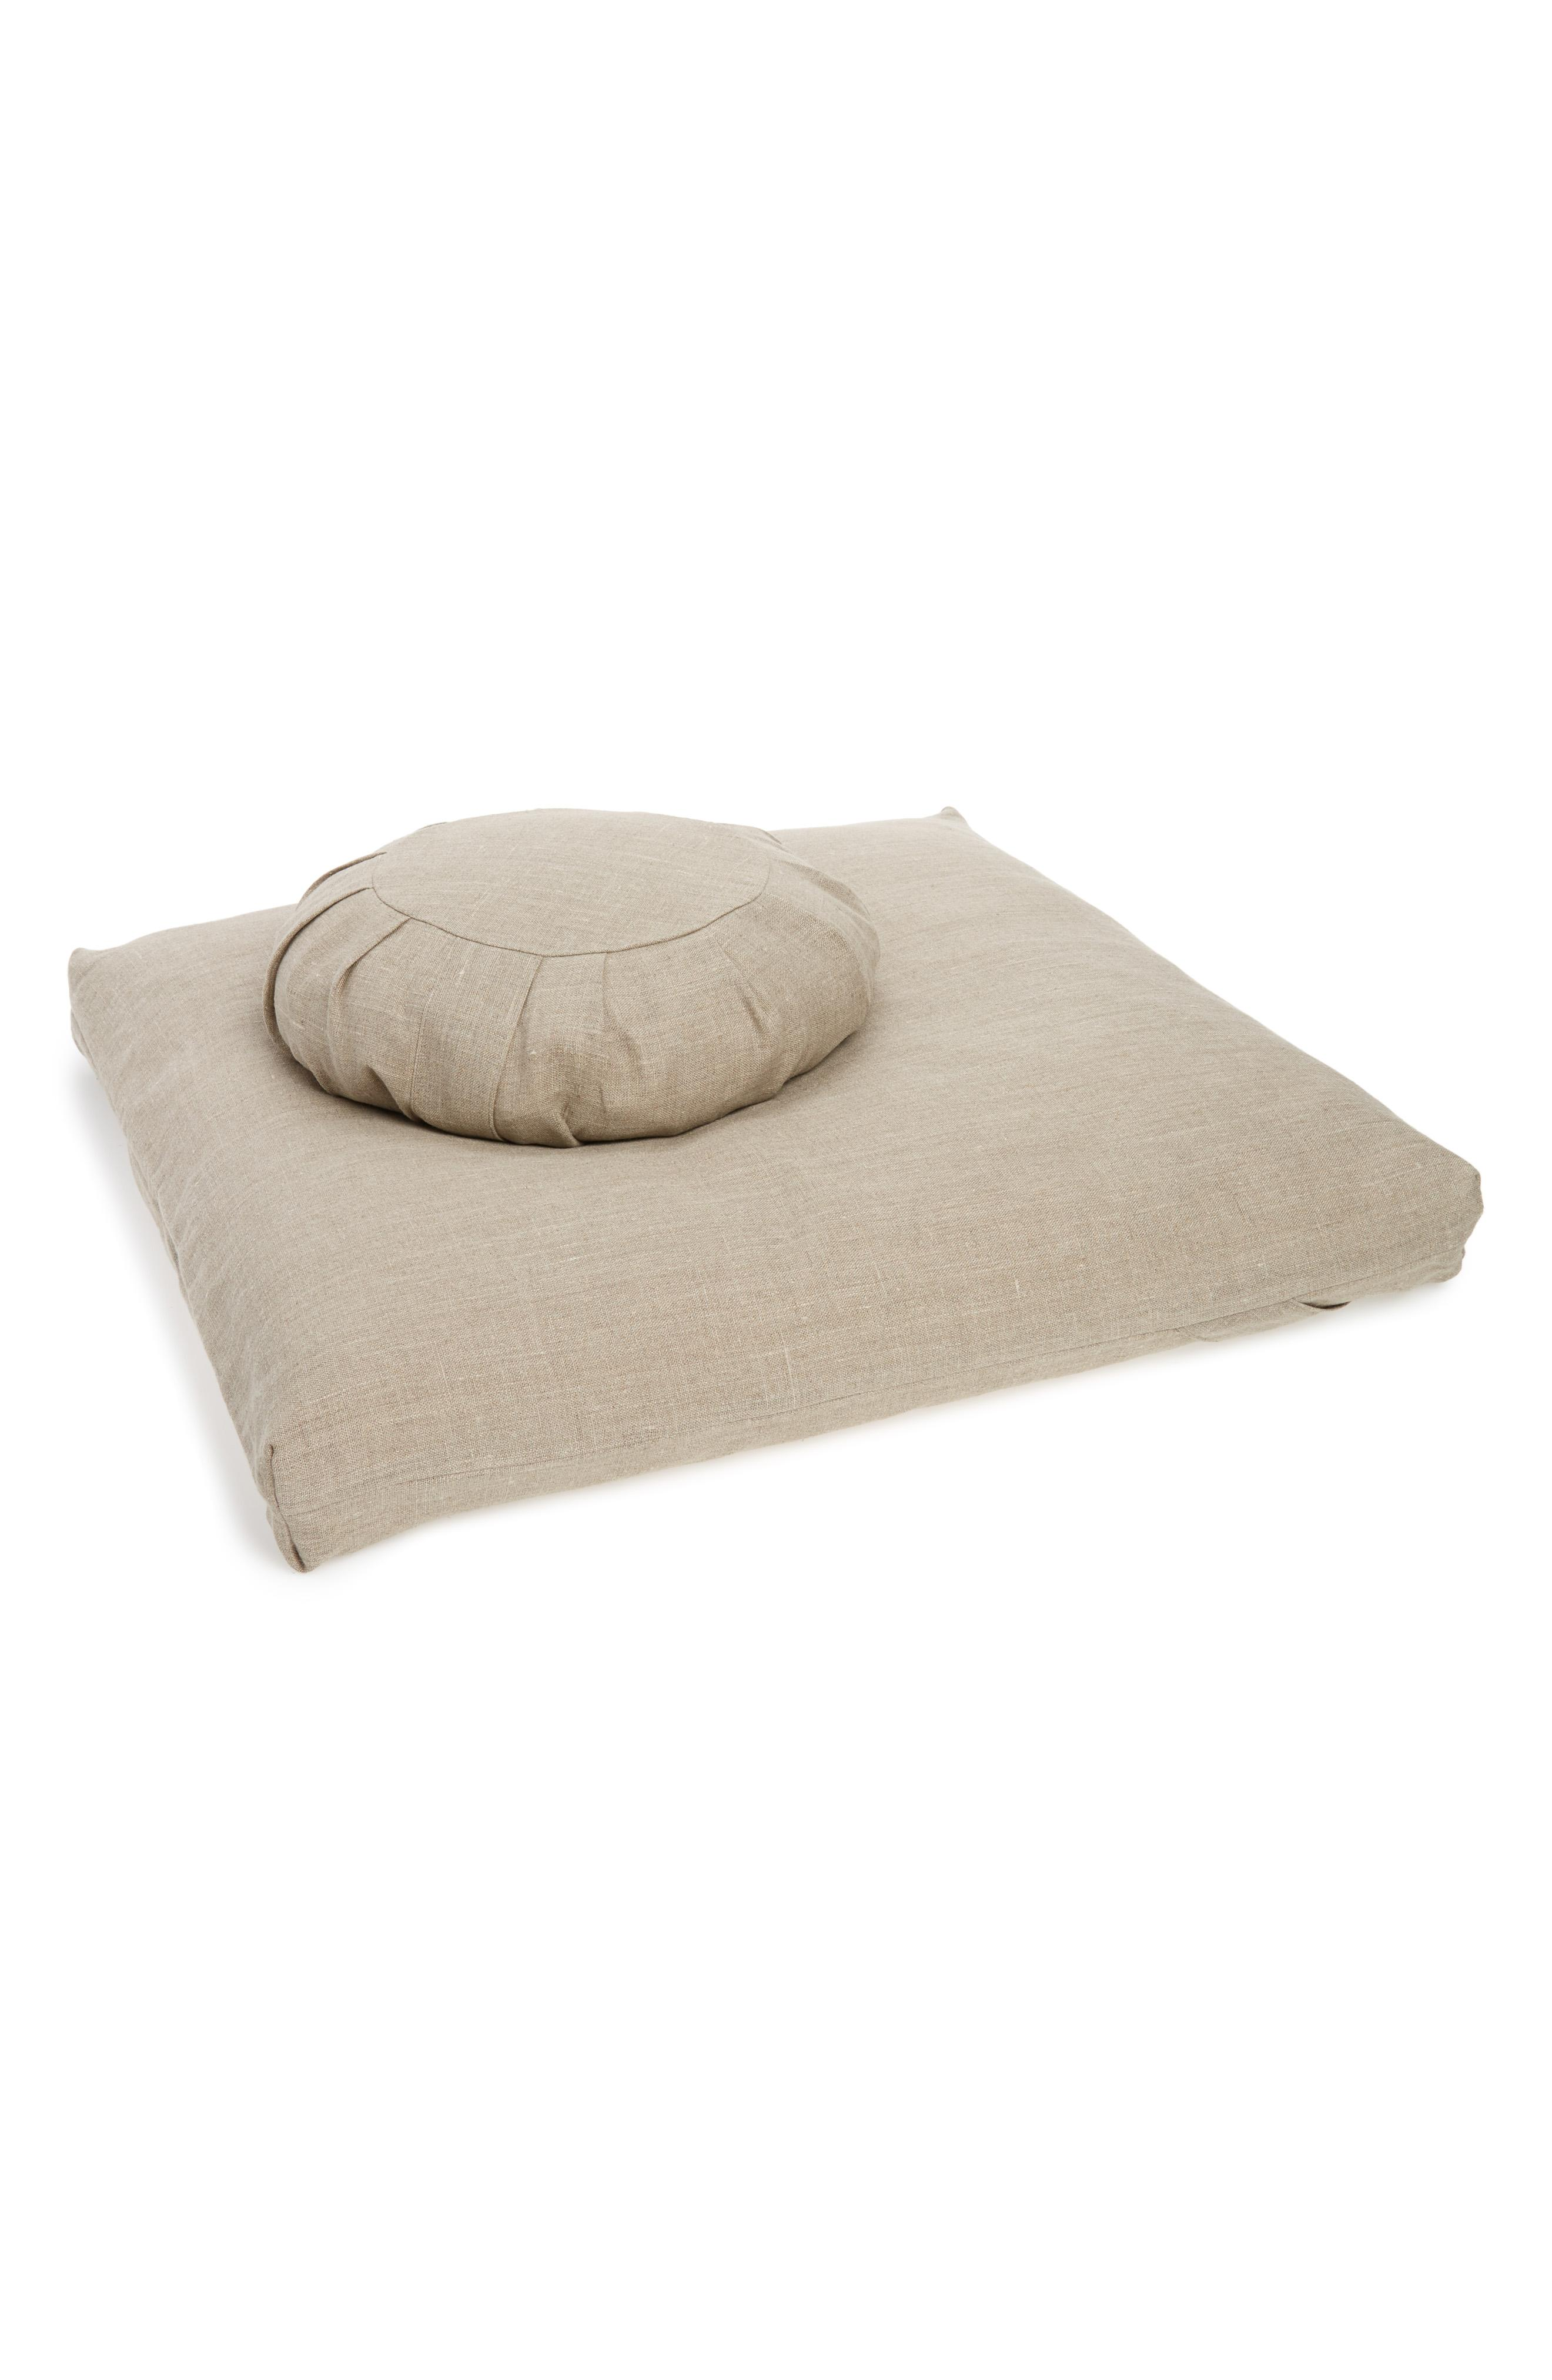 Don't you dare call it a dog bed! It's a meditation pad, duh. Ever Veritas Zafu Zabuton Meditation Cushion Set - $496. More info at Nordstrom.com/POP (Image: Nordstrom)